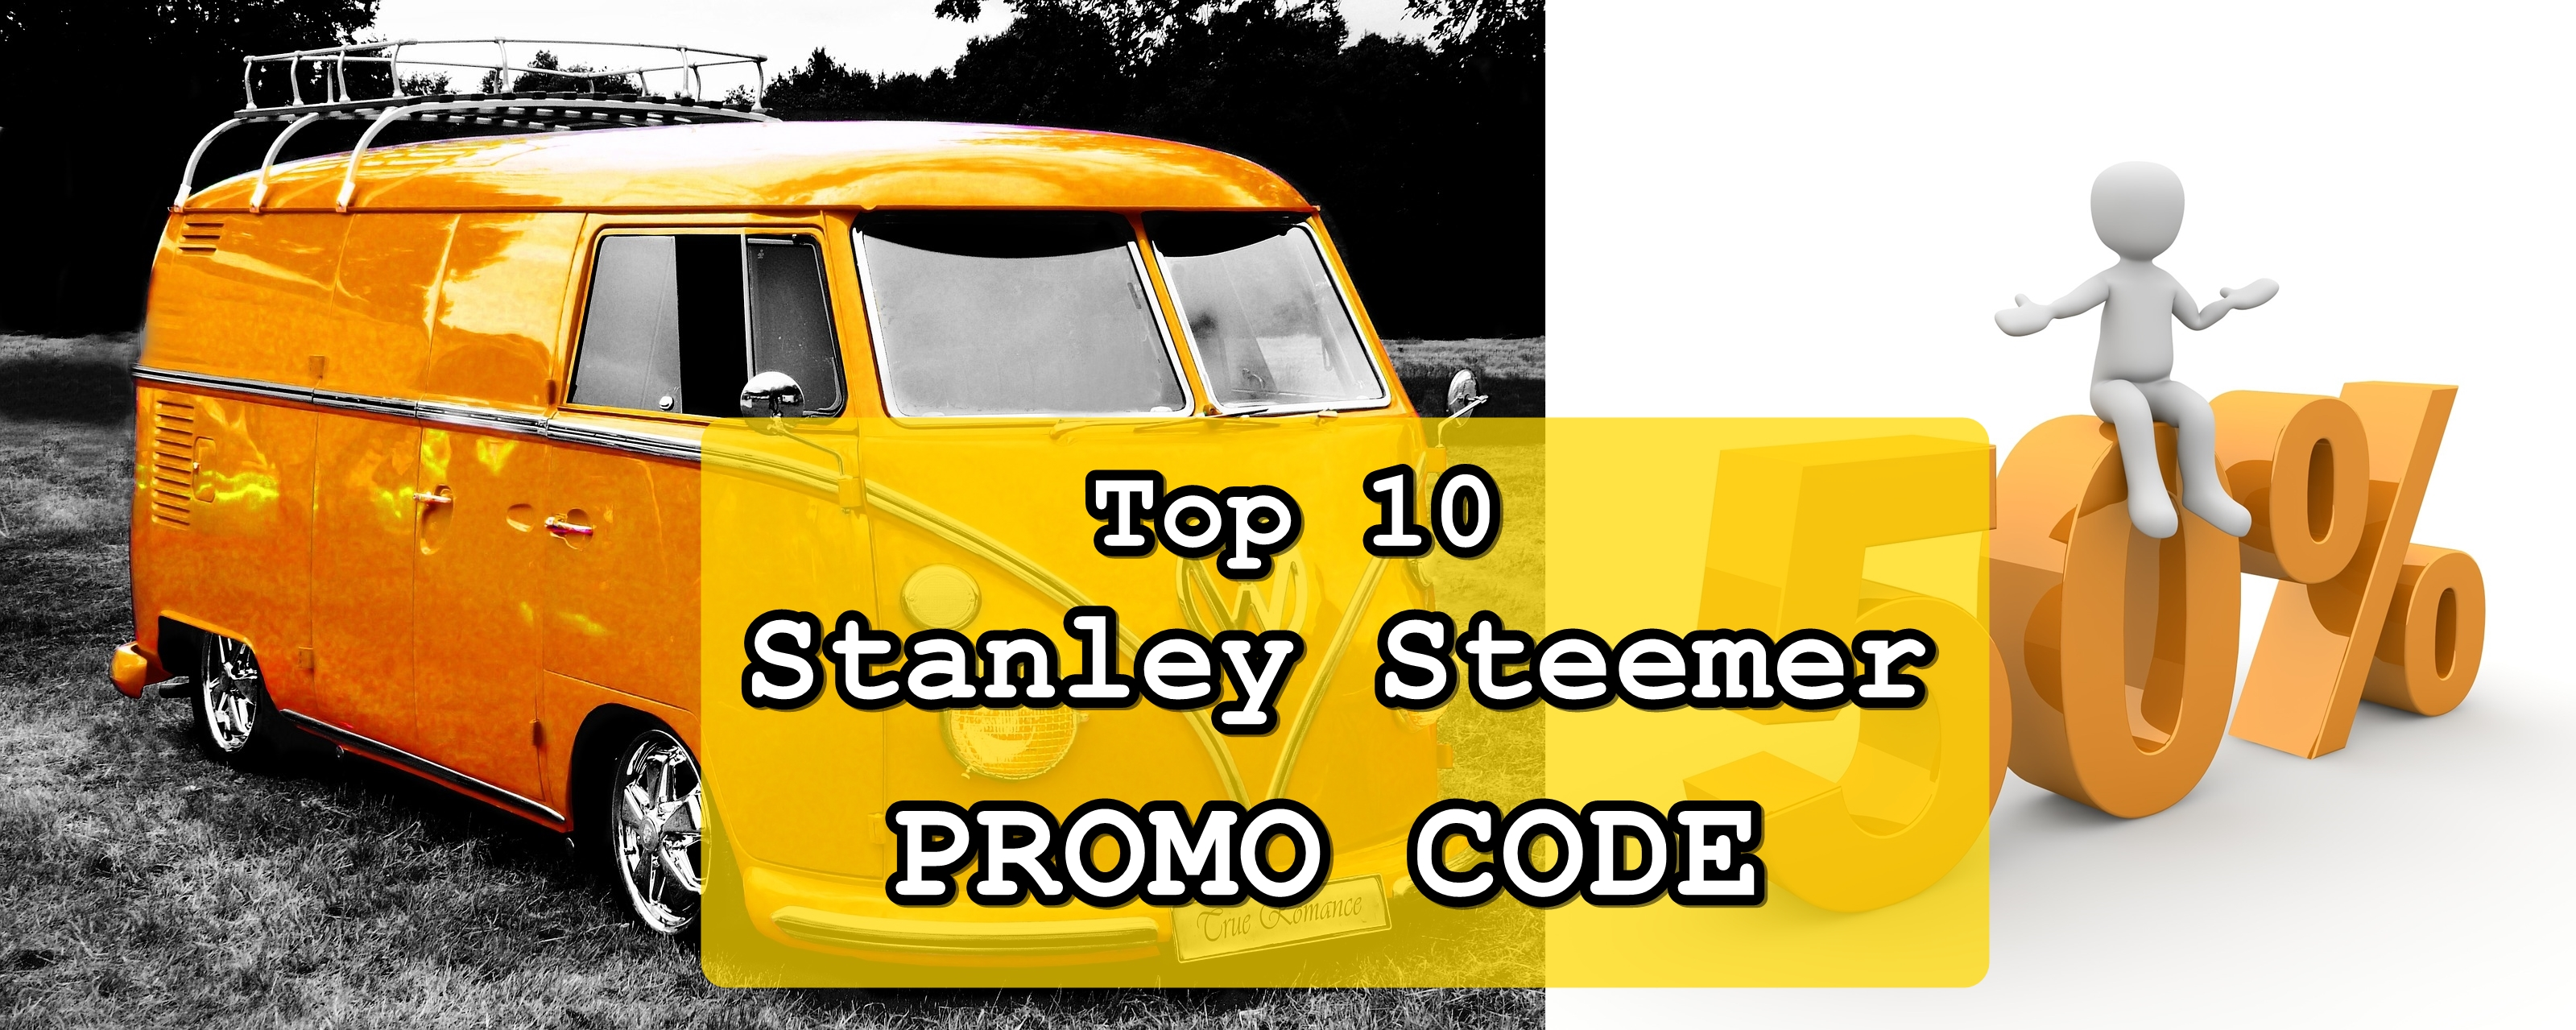 photo about Stanley Steemer Coupon Printable named Stanley Steemer Coupon codes Discounts - Ultimate Place of work Cleaner